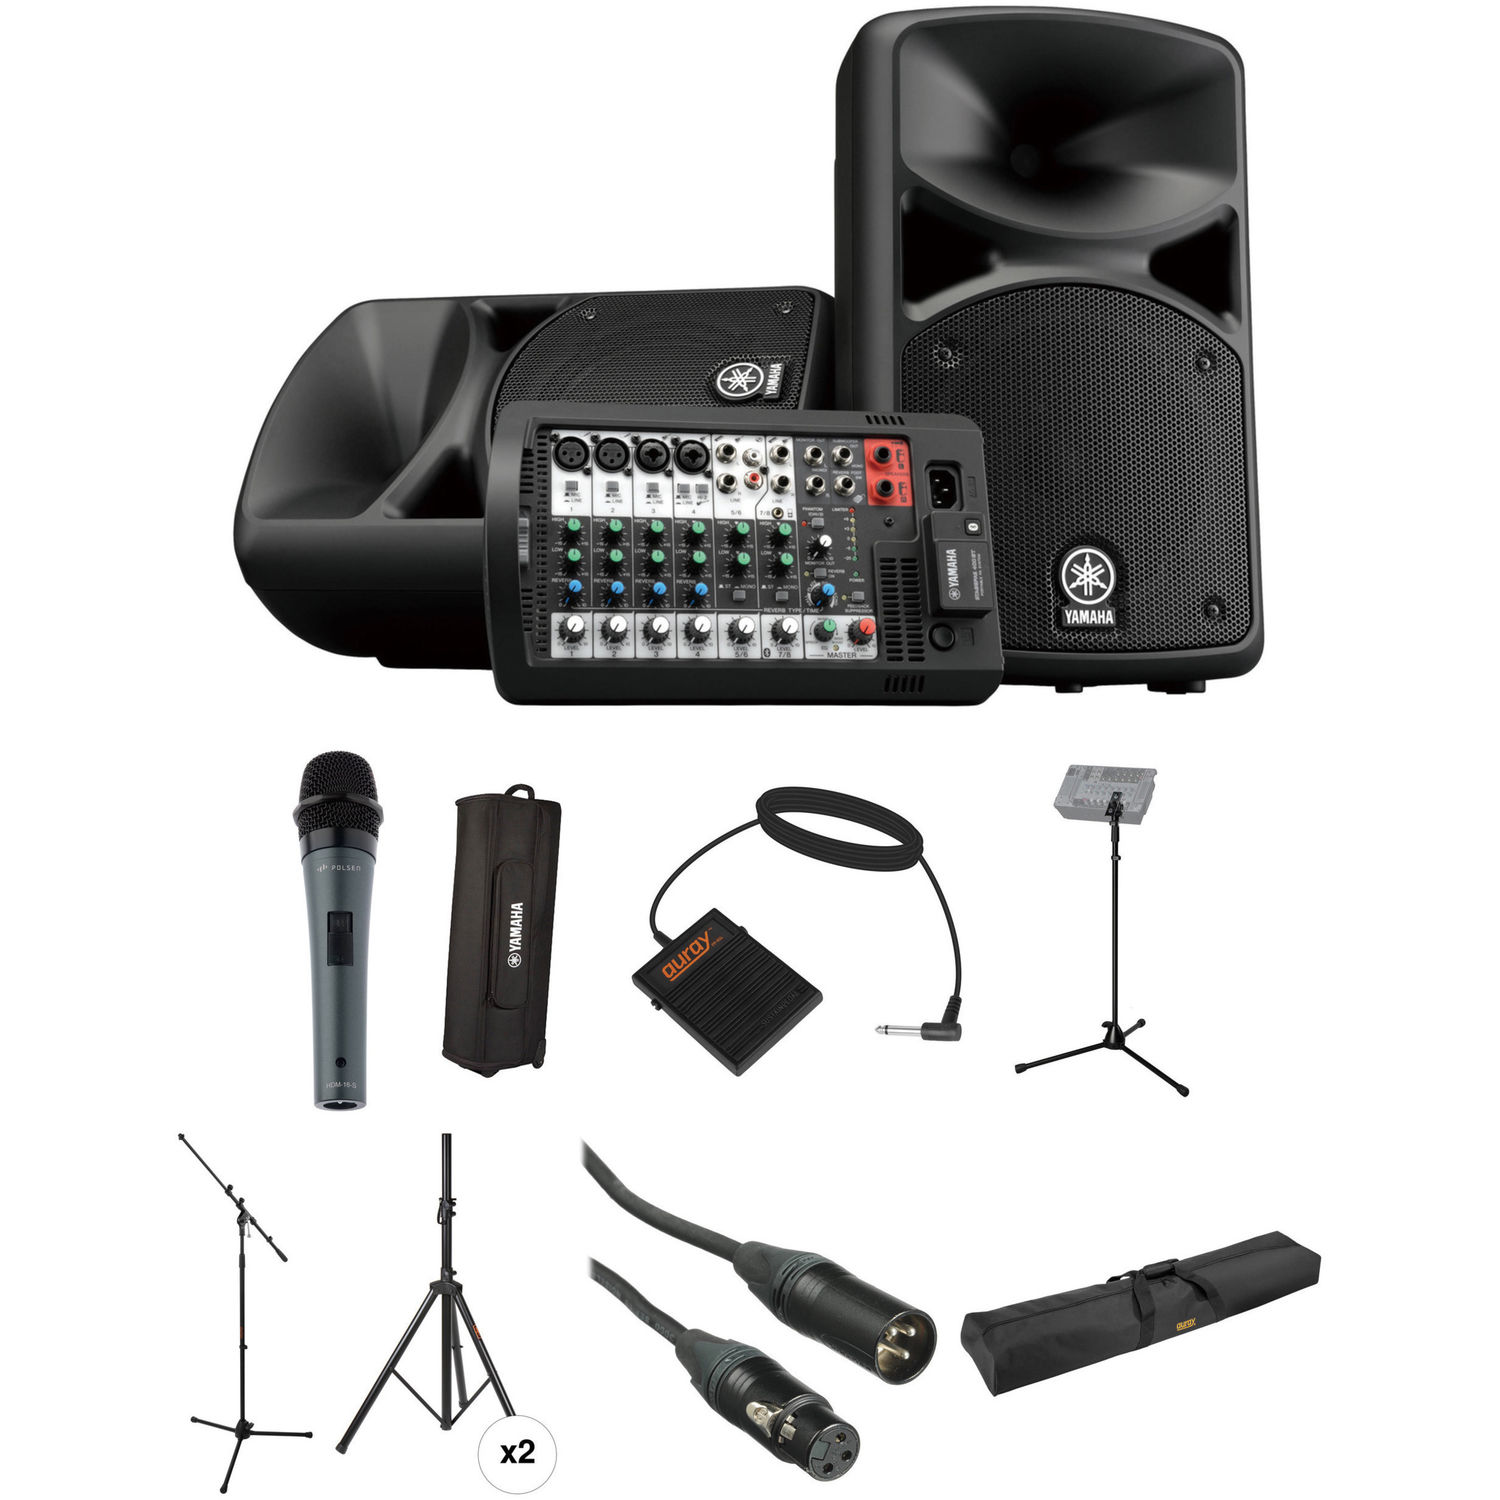 yamaha stagepas 400i kit with mic footswitch stands cases. Black Bedroom Furniture Sets. Home Design Ideas